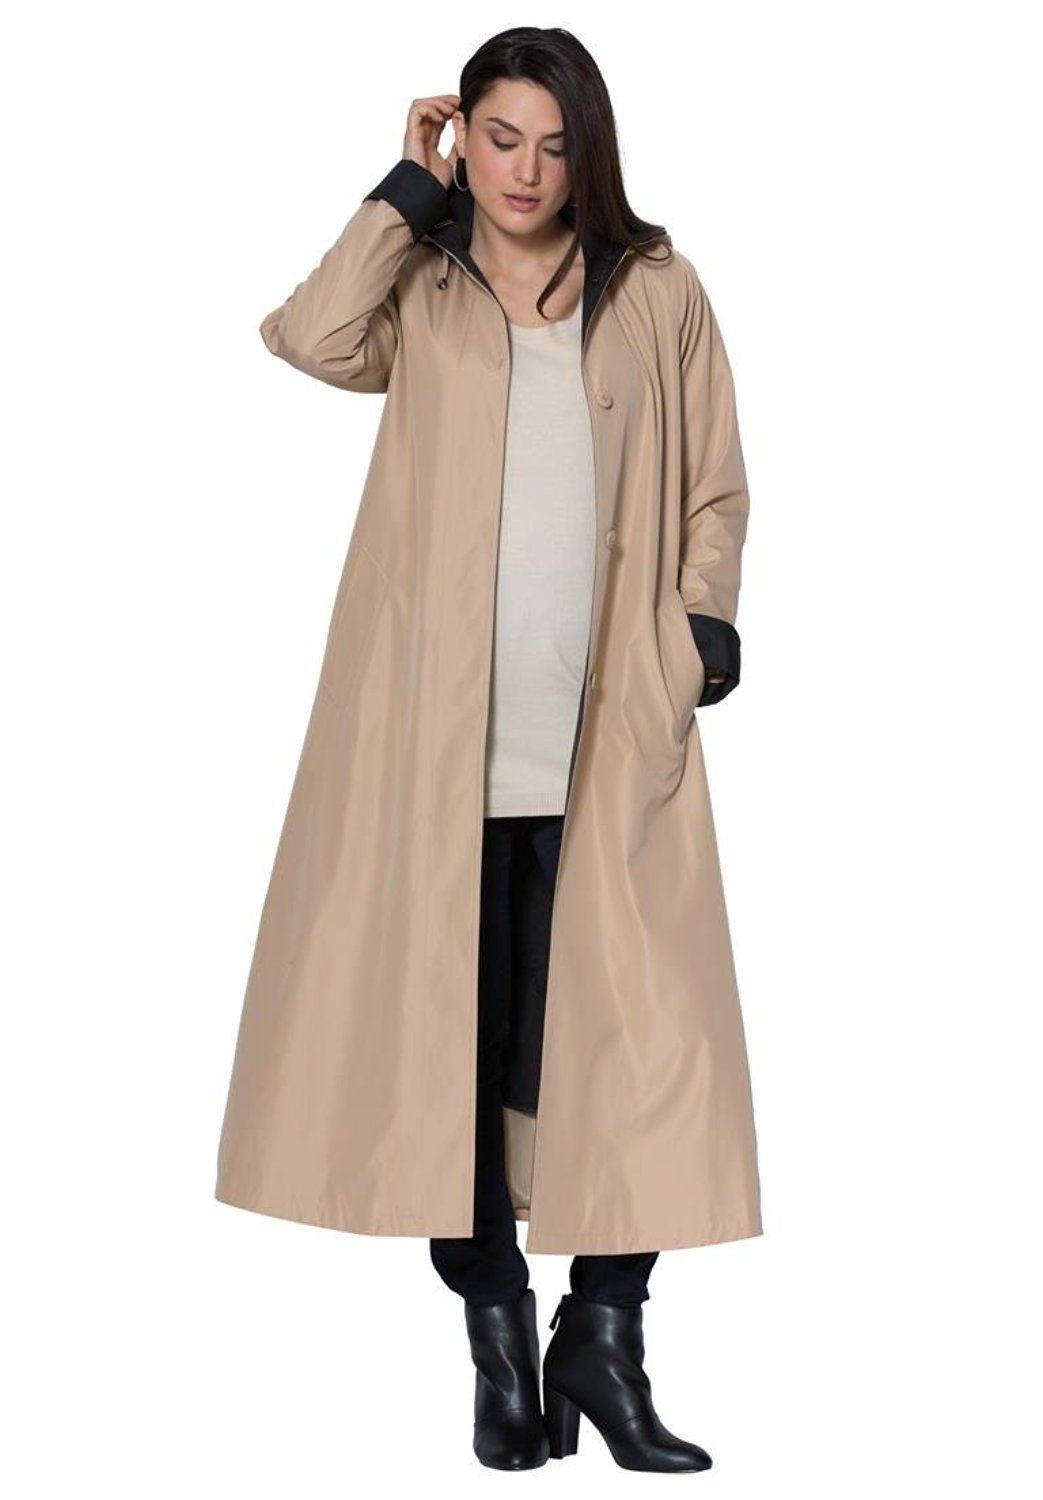 Jessica London Women s Plus Size Long Hooded Raincoat     Don t get left  behind 6cae97ce5